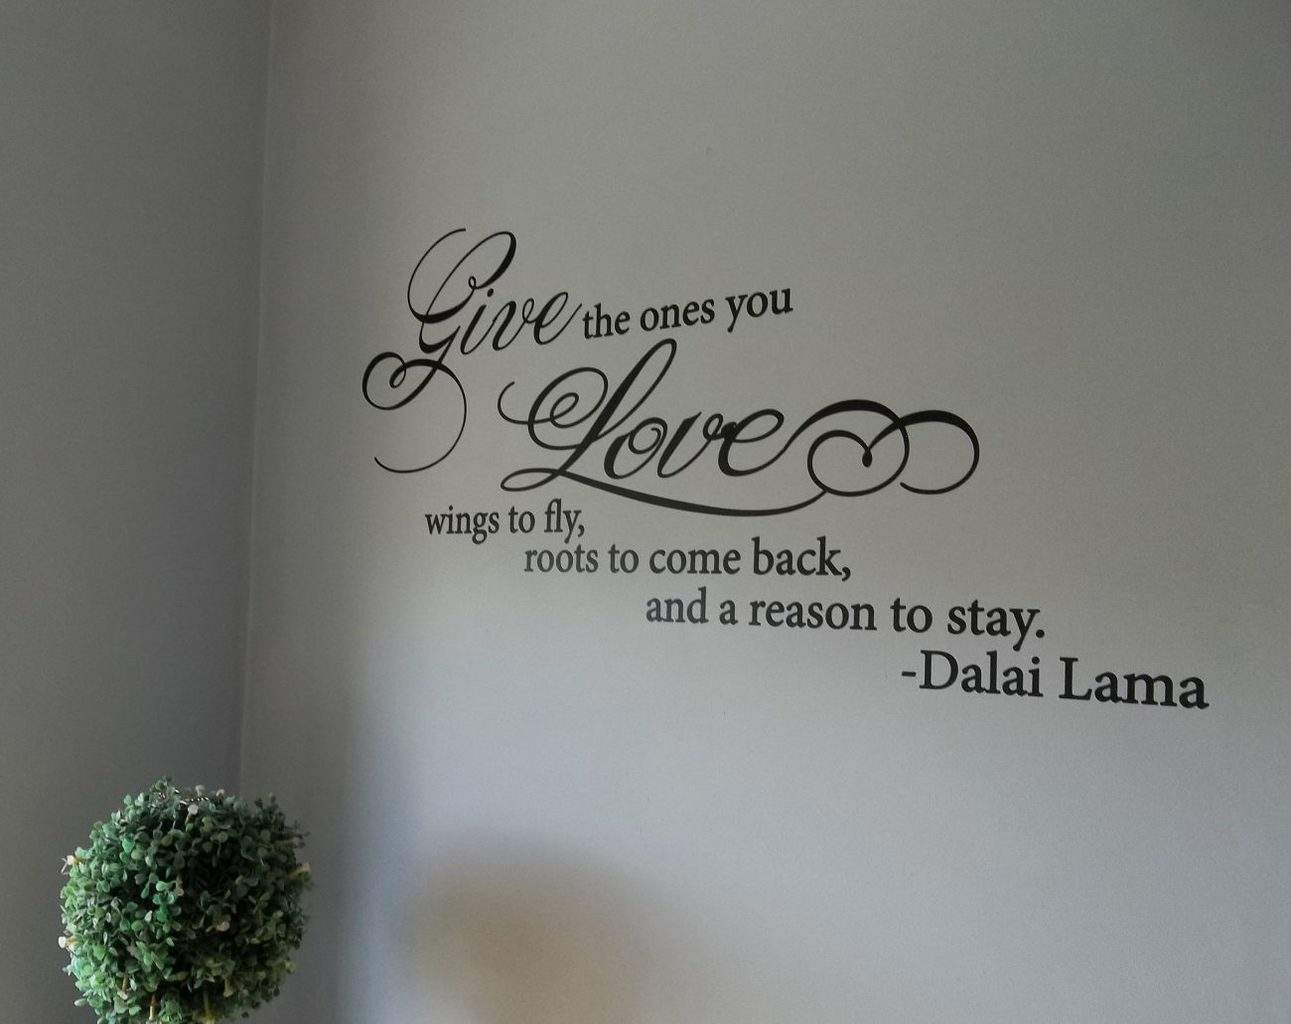 Give the ones you love wall decal sticker